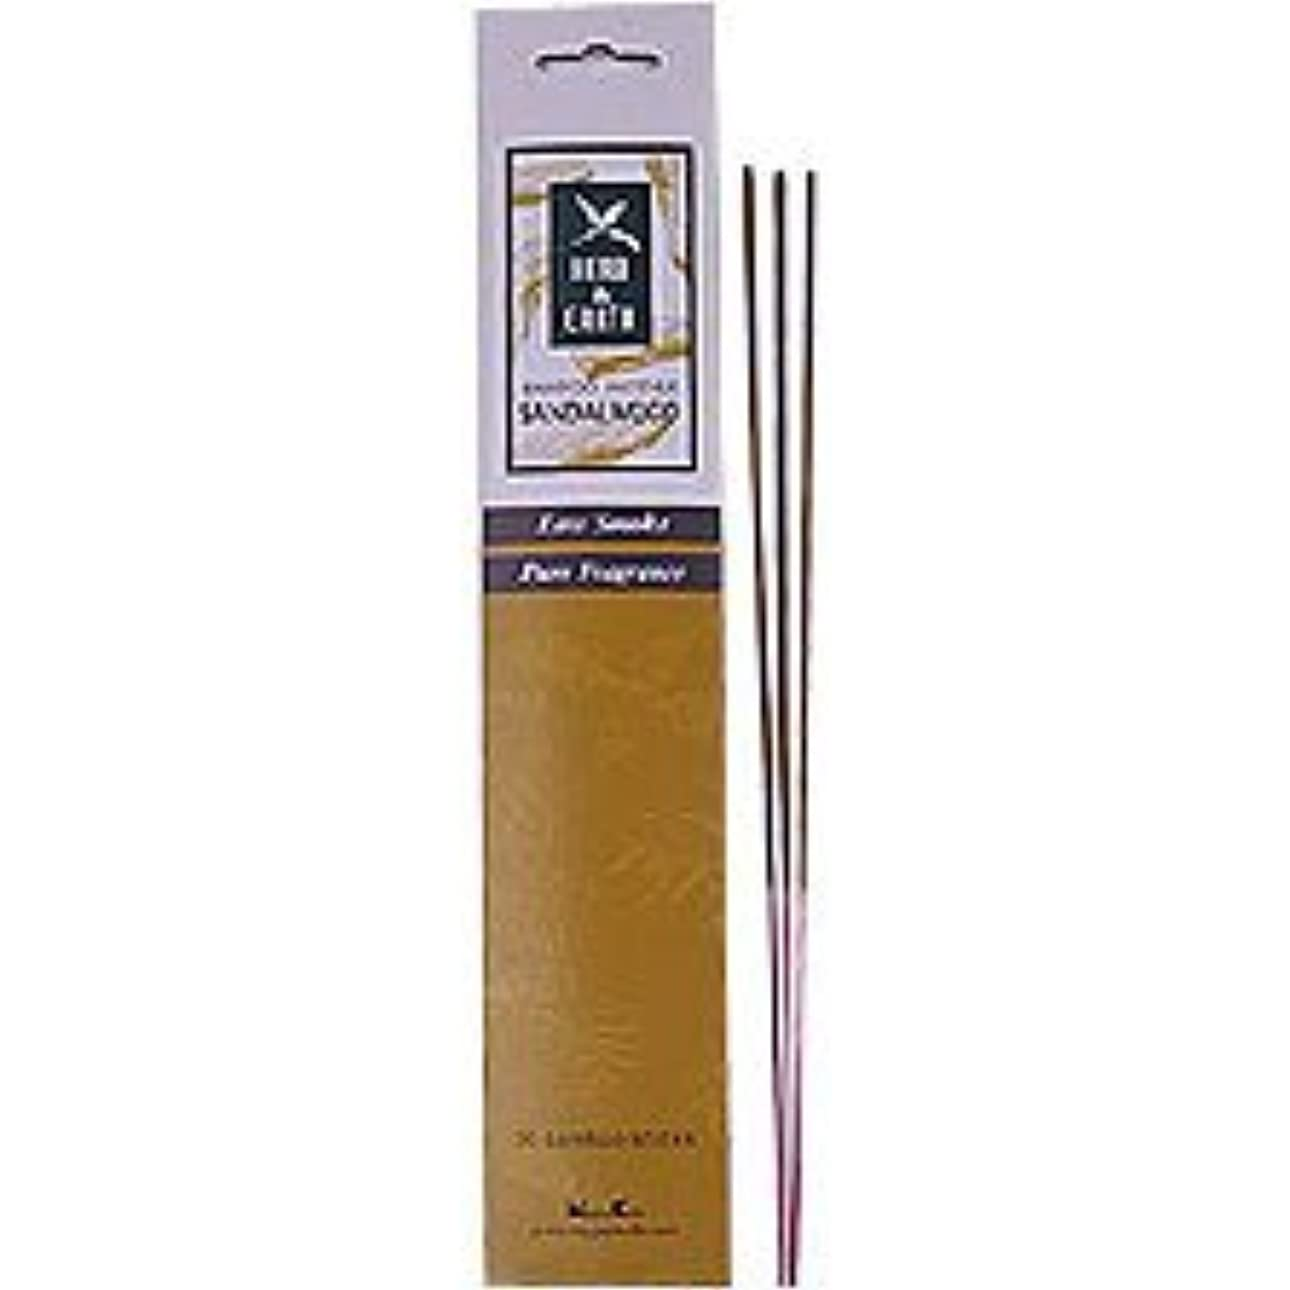 起きろメダリストフランクワースリーSandalwood - Herb and Earth Incense From Nippon Kodo - 20 Stick Package by Herb & Earth [並行輸入品]